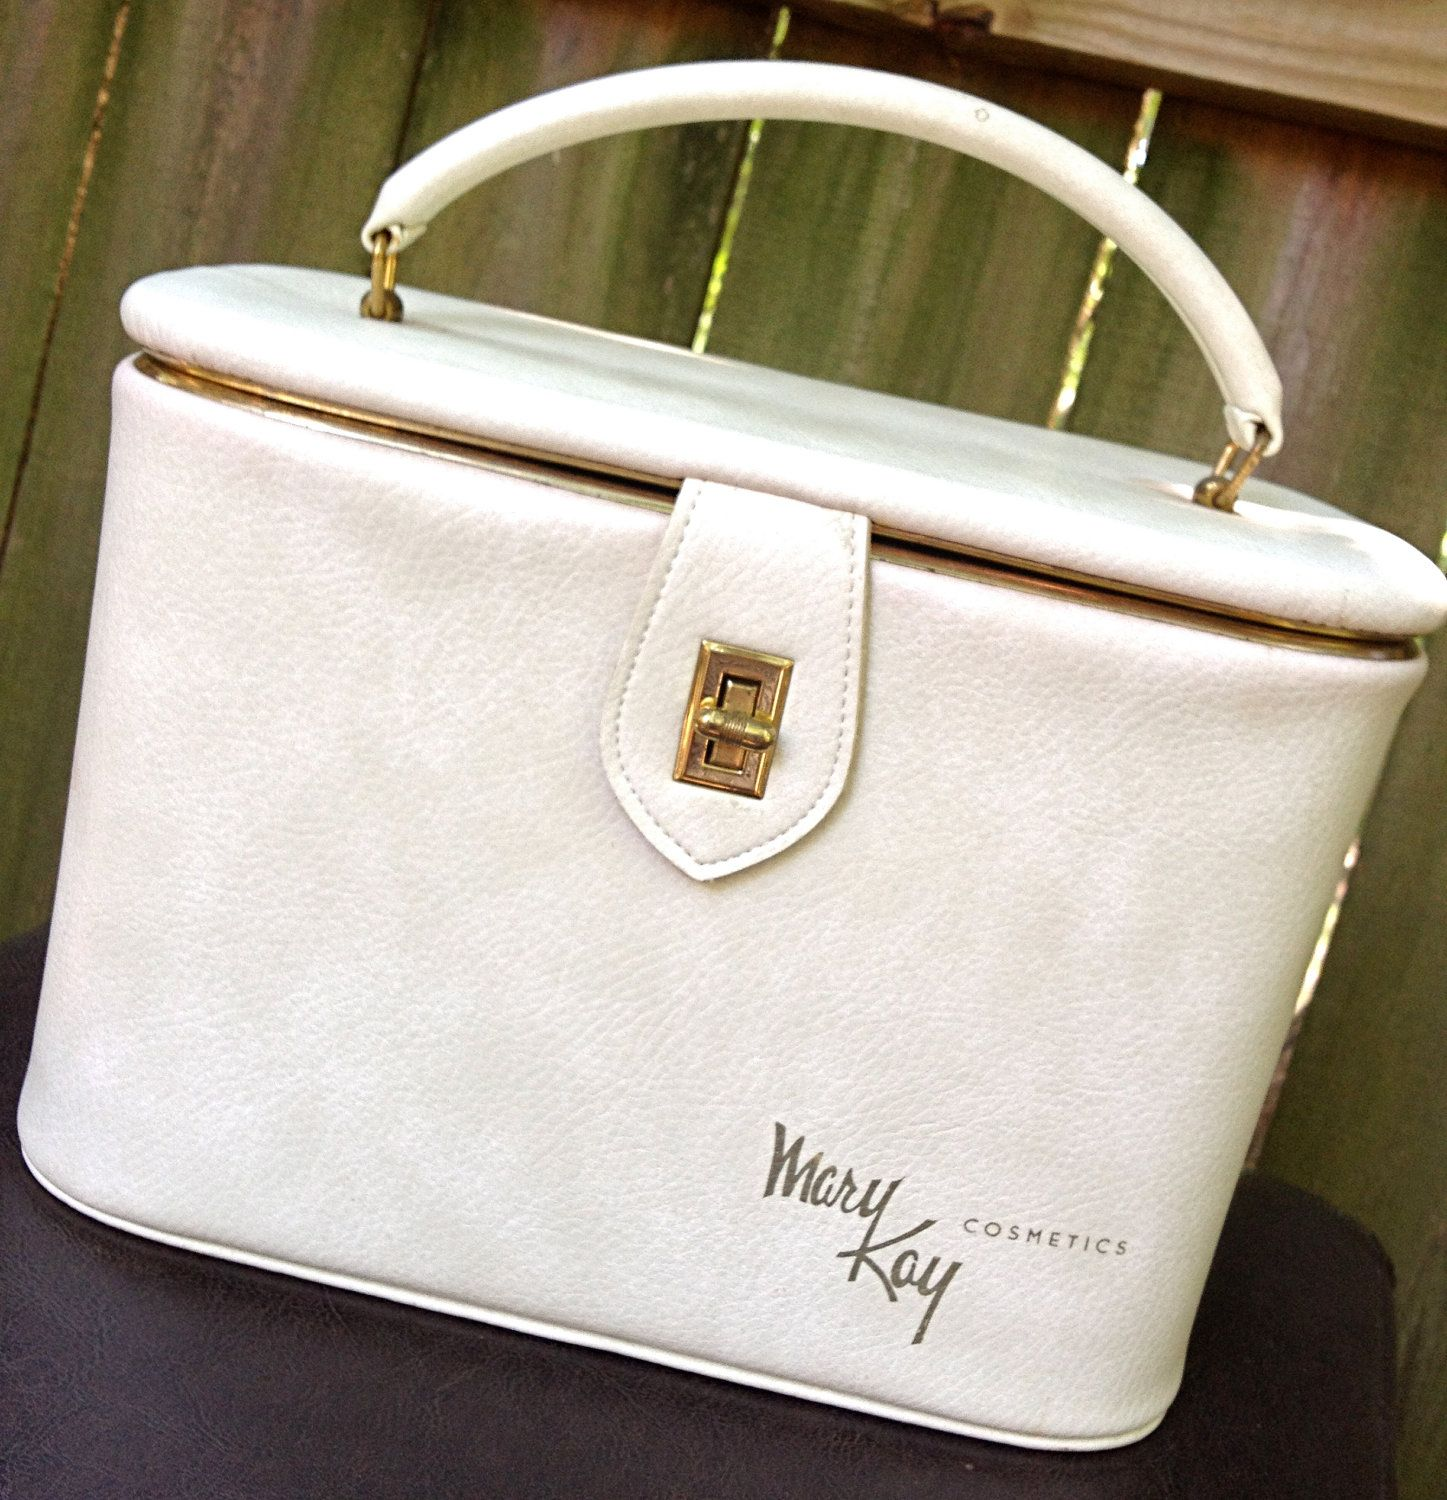 vintage makeup case ivory leather Mary Kay travel